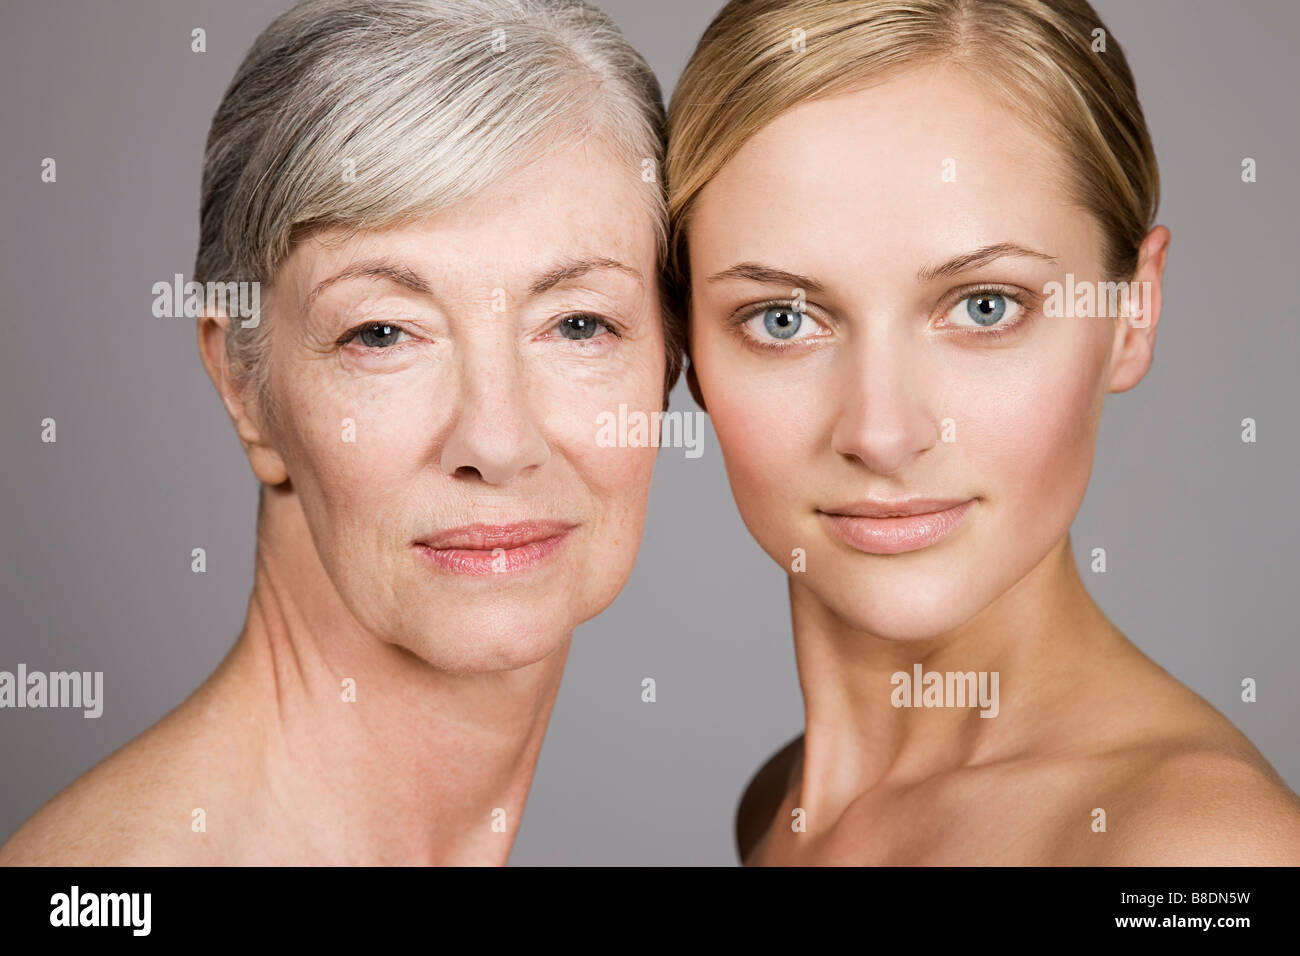 Faces of young and senior women - Stock Image